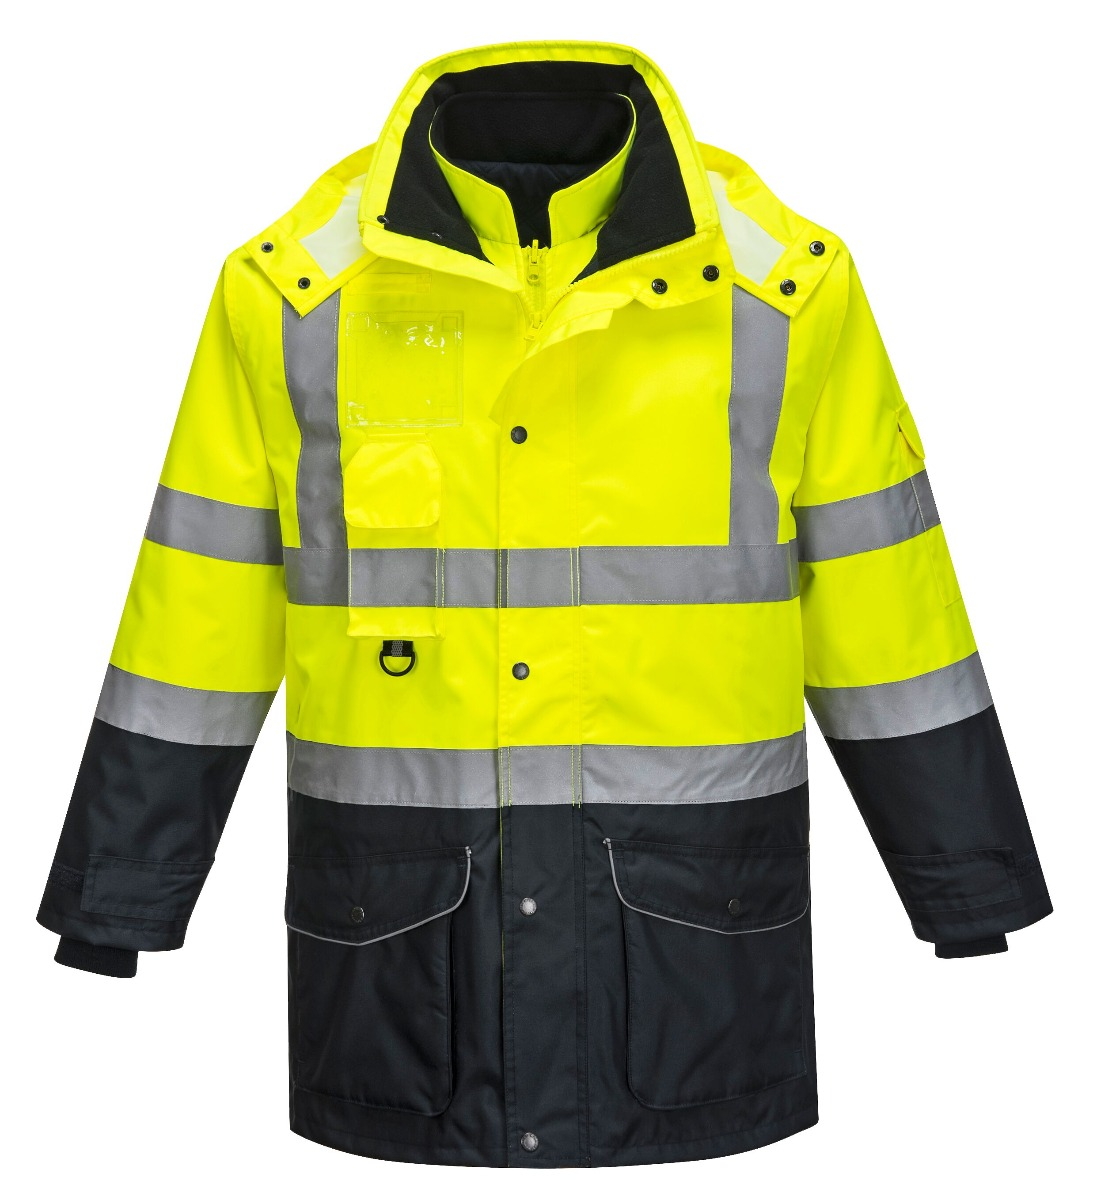 Portwest Hi-Vis 7-in-1 Contrast Traffic Jacket - S426